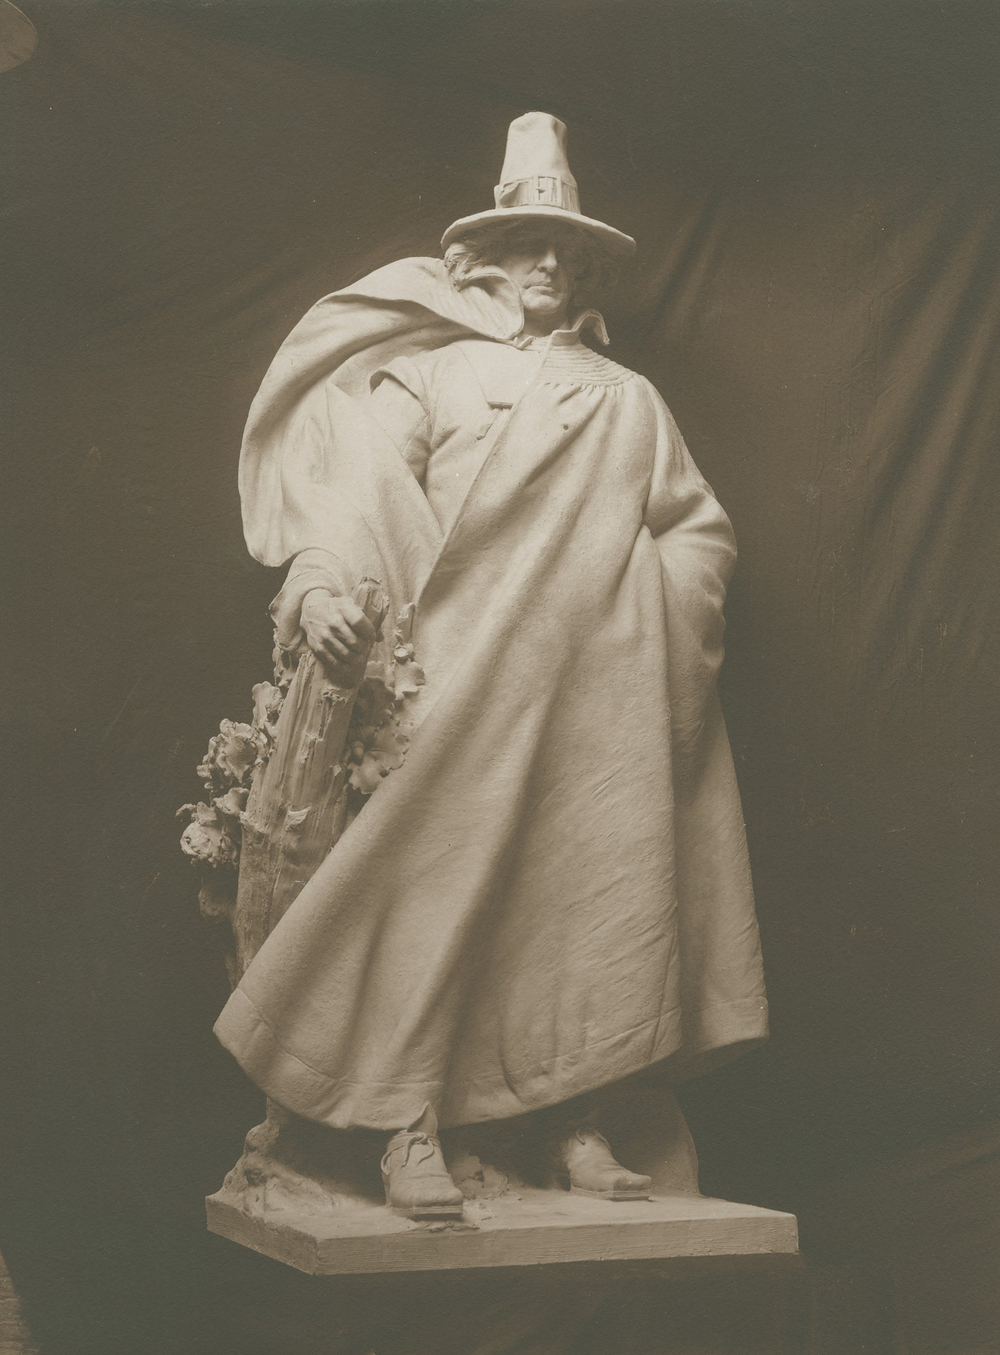 American Sculpture Photograph Study Collection, Photograph Archives, Smithsonian American Art Museum